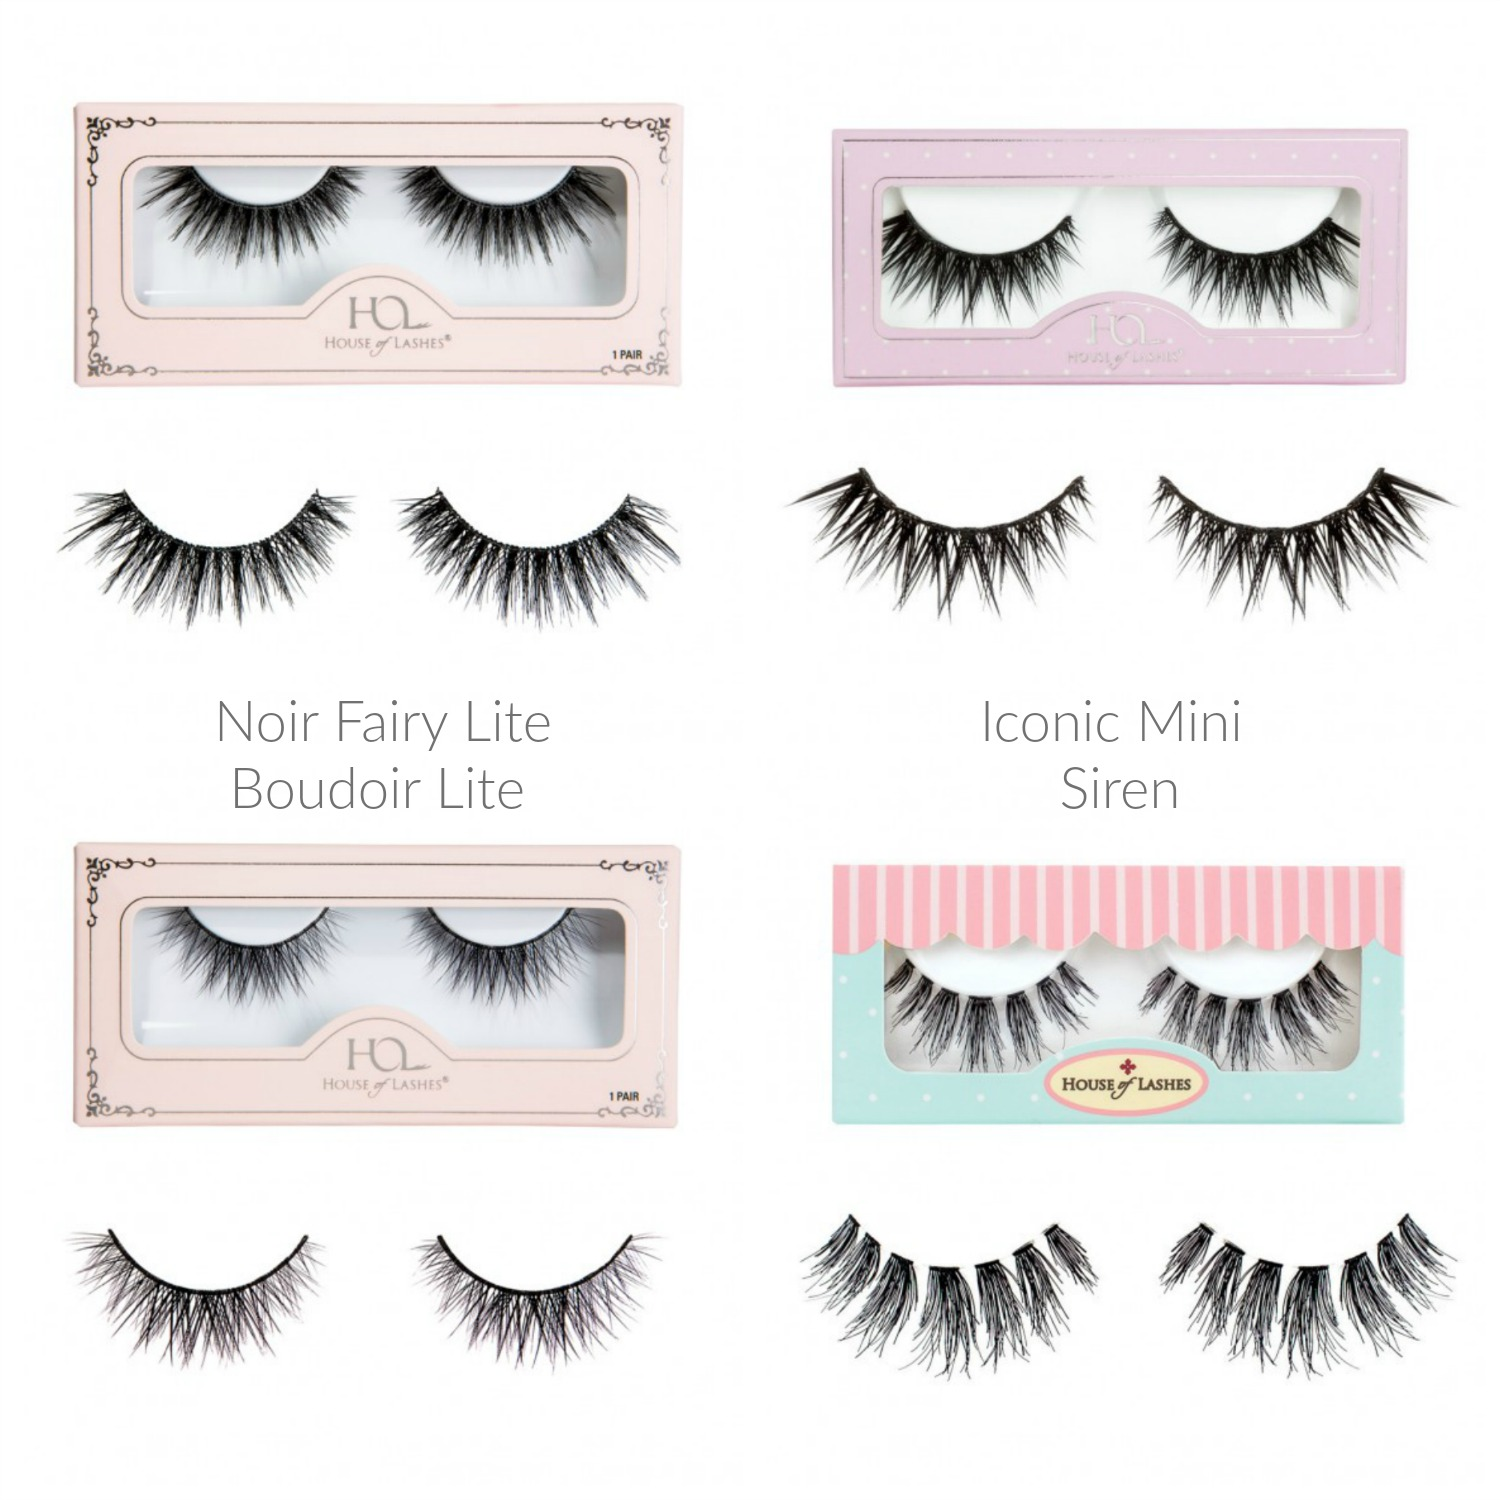 b01f20e4b10 Trying Out House of Lashes + Lash Adhesive